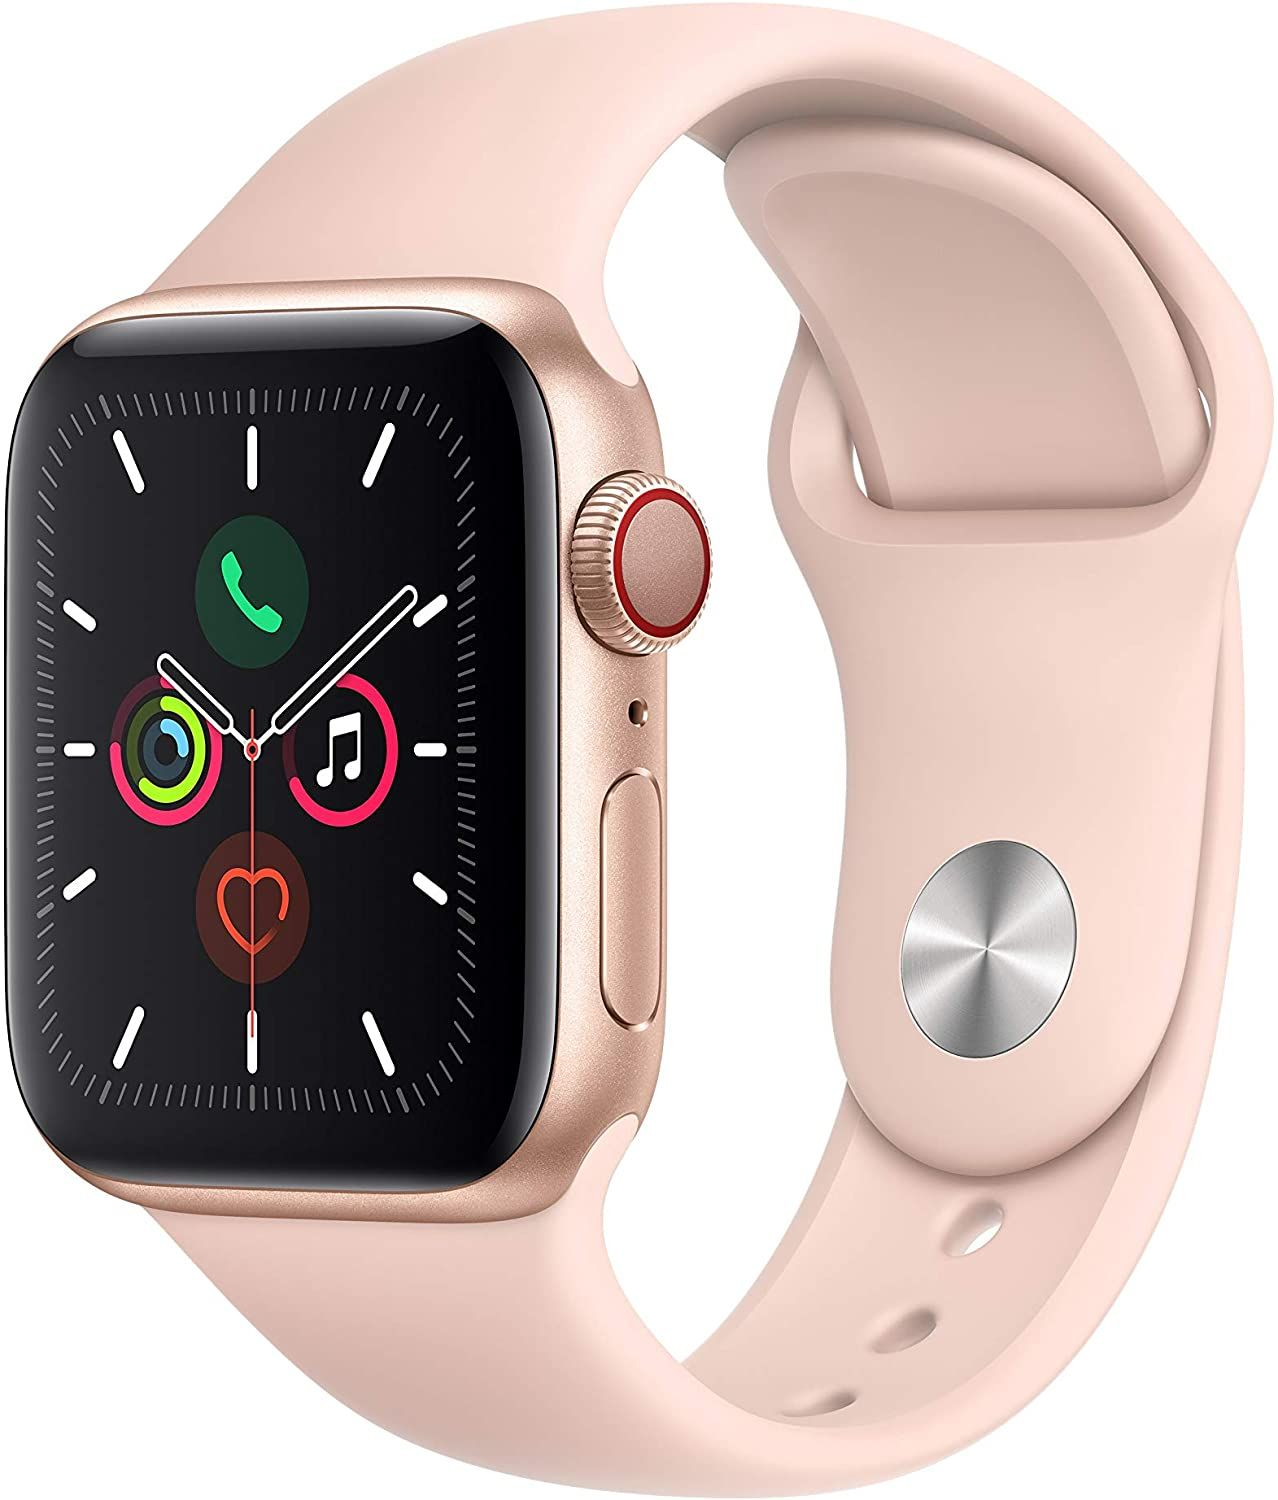 Coupon Amazon In 2020 Apple Watch New Apple Watch Apple Watch Series